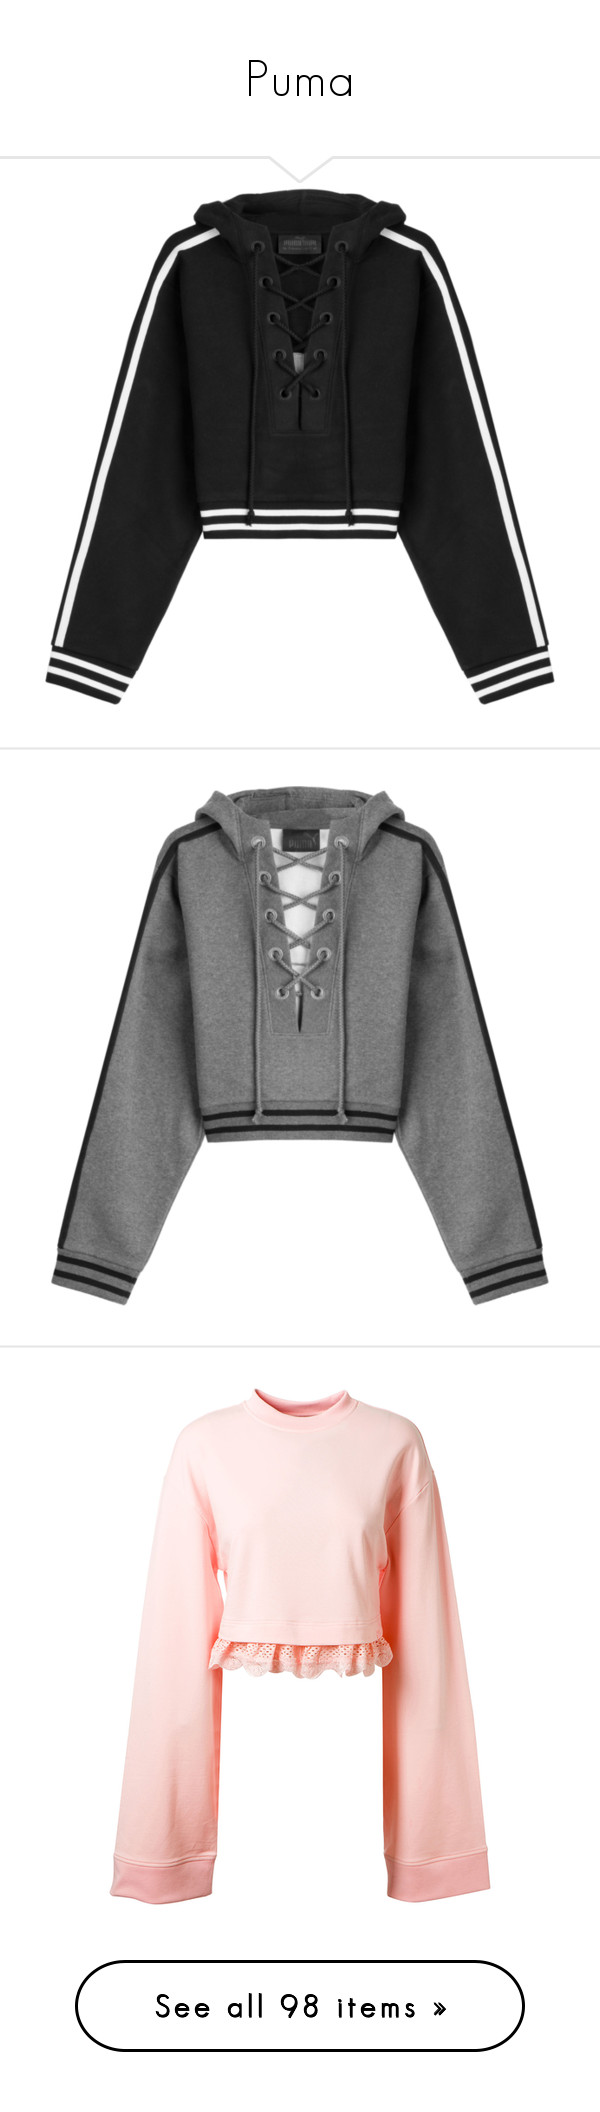 """""""Puma"""" by kellzchan ❤ liked on Polyvore featuring tops, hoodies, jackets, sweaters, cropped, black, lace up top, hooded sweatshirt, lace up crop top and oversized hoodies"""